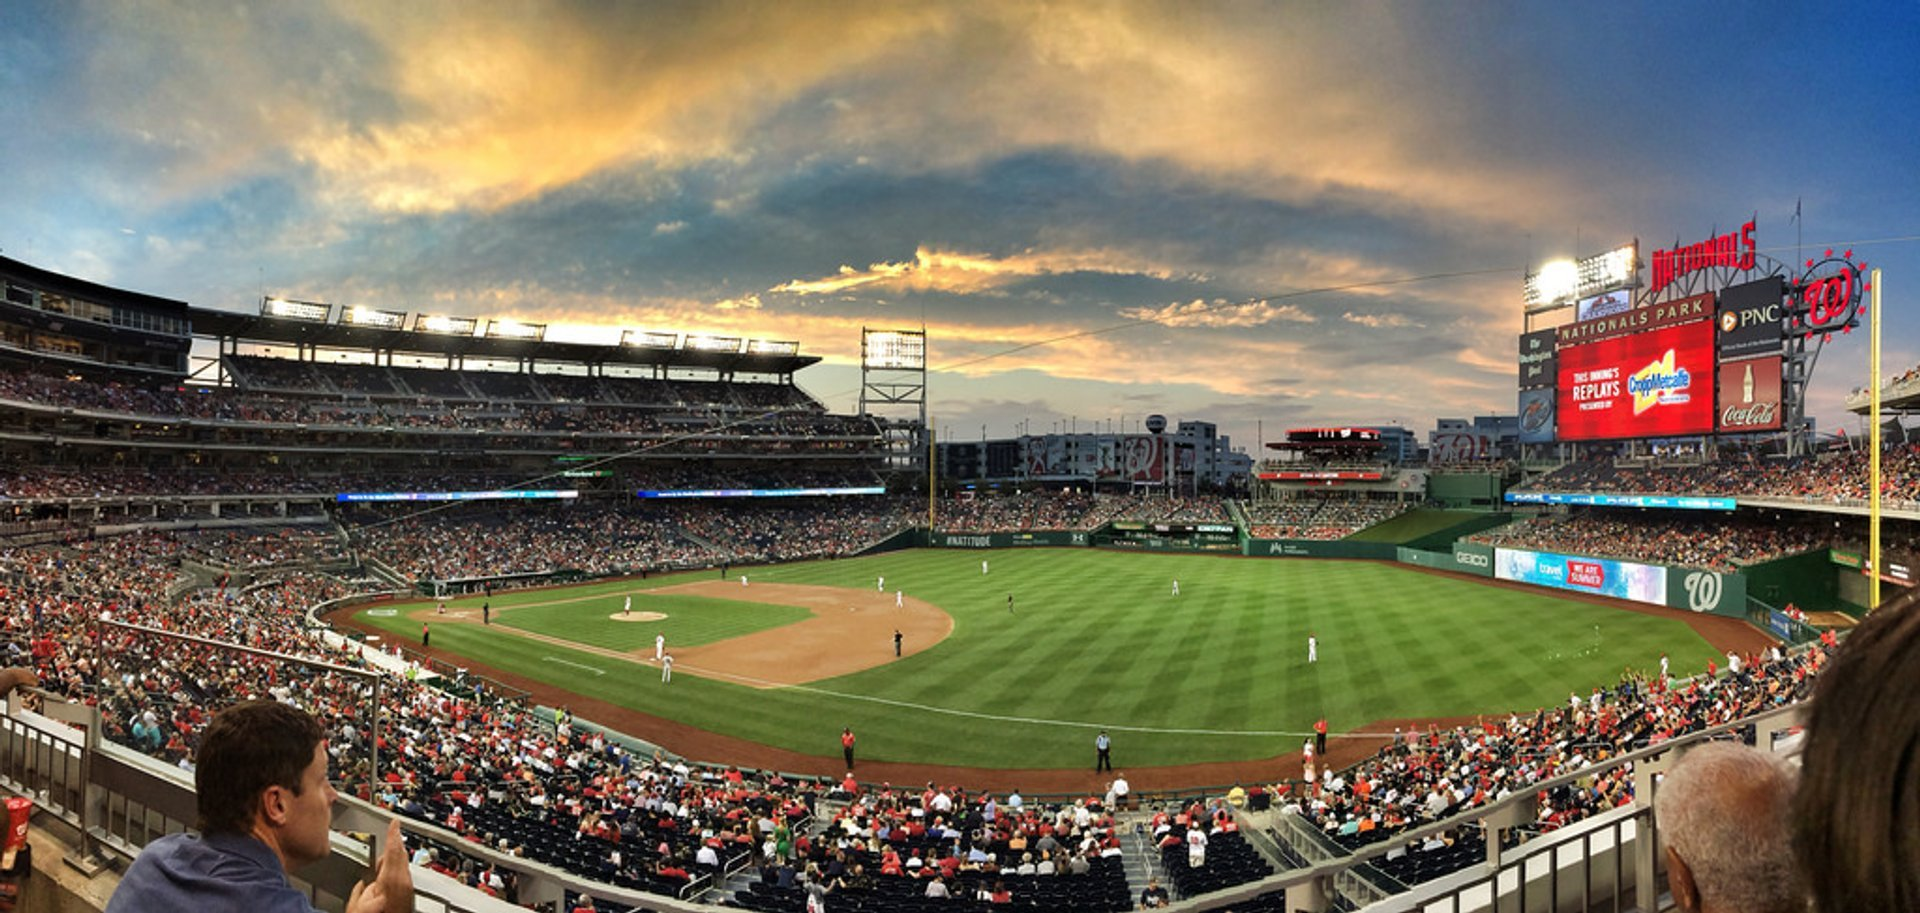 Best time for Washington Nationals in Washington, D.C. 2019